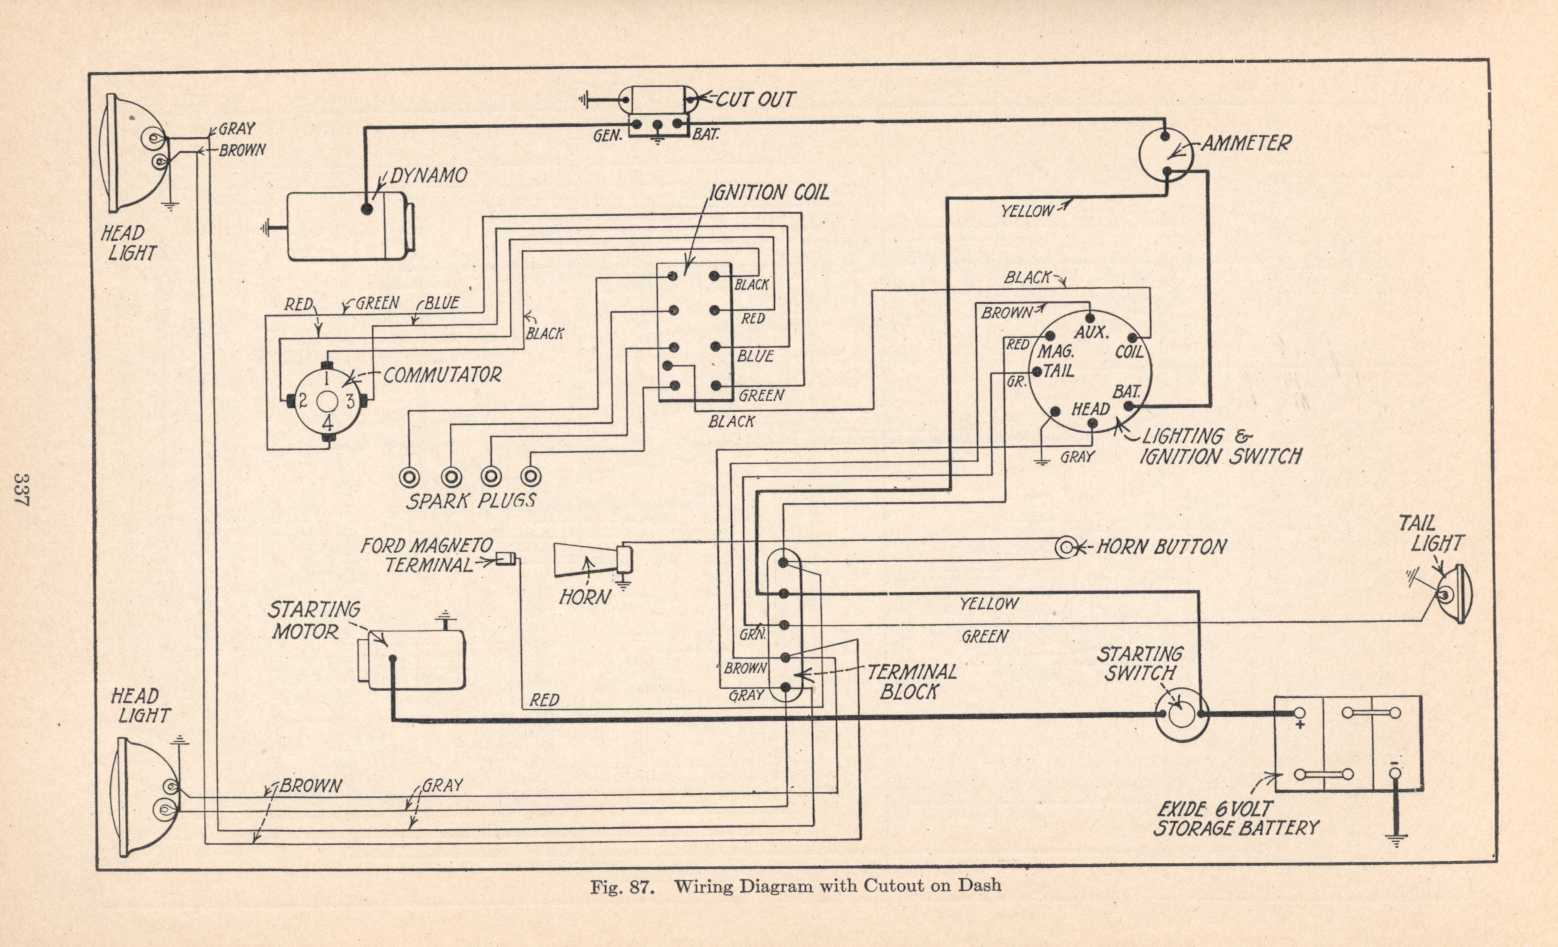 model a wiring diagram nordyne fehb unit on 017ha model t ford forum: wiring model a wiring schematics #8